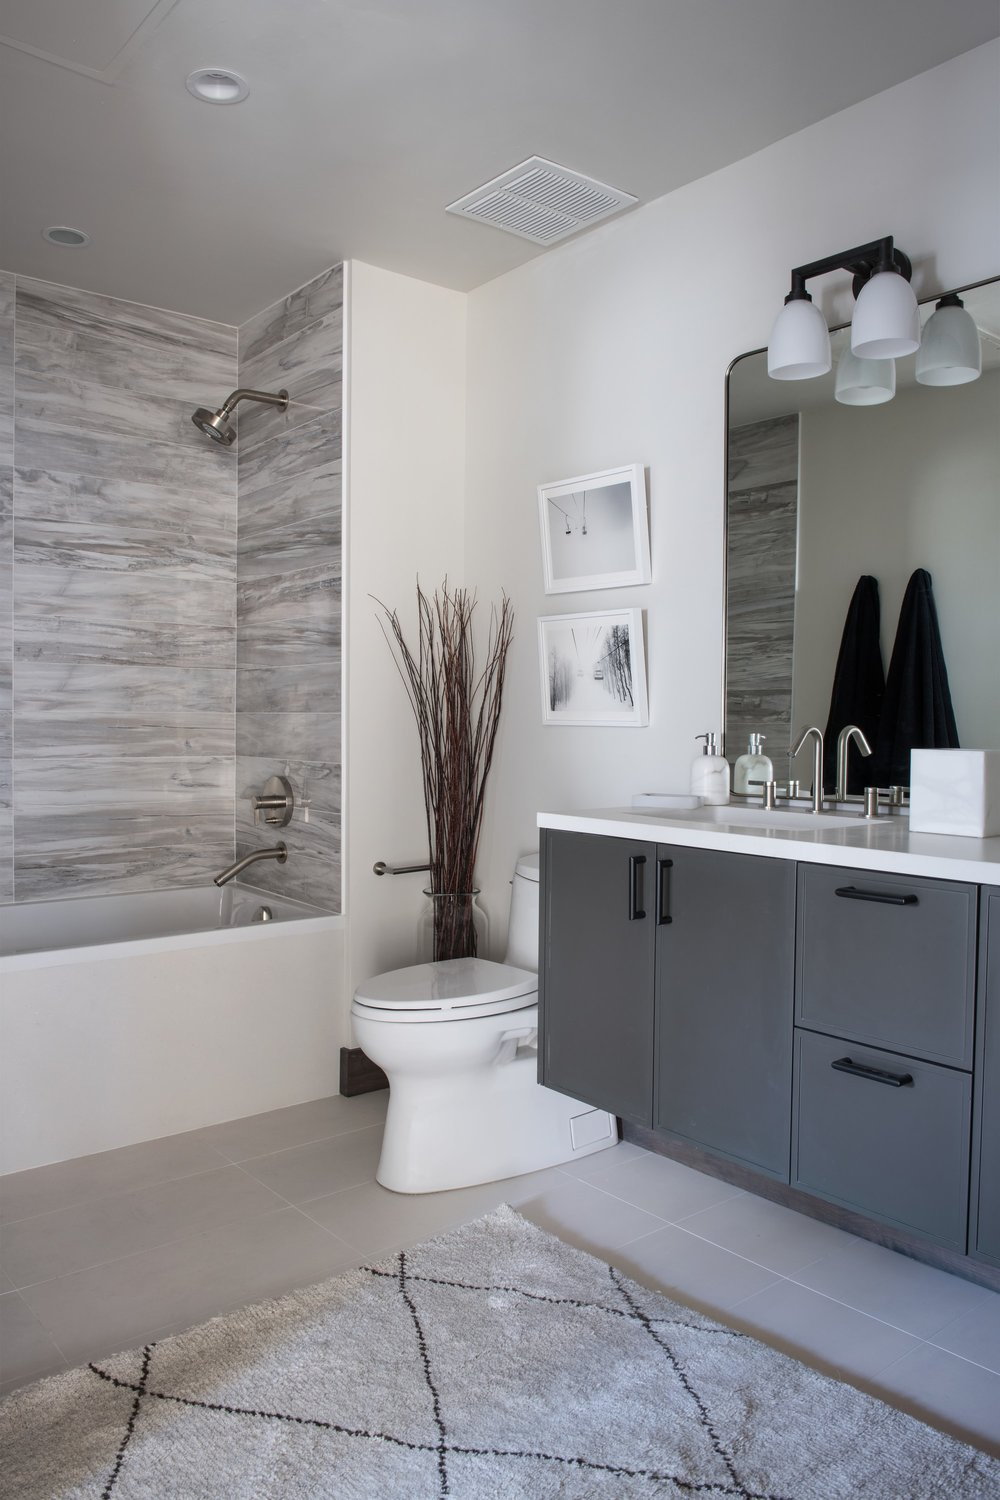 Modern bathroom with spacious cabinet and painting